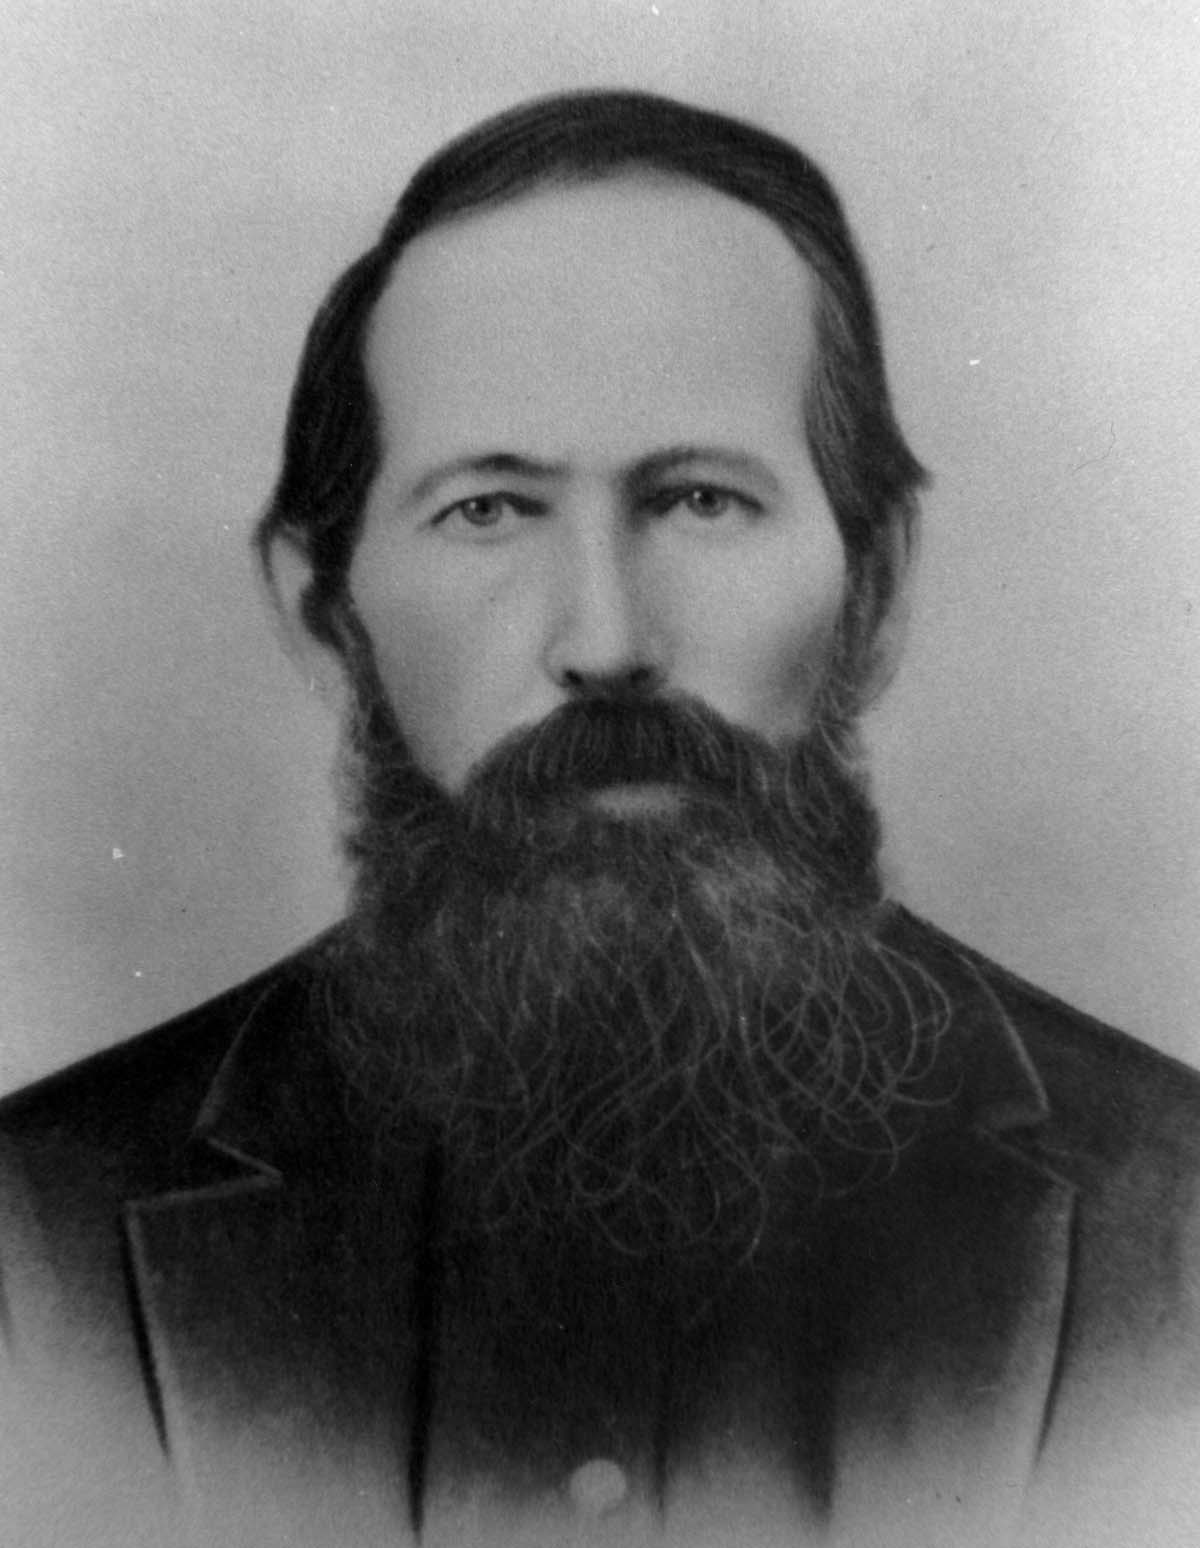 Chester Perry Cotton